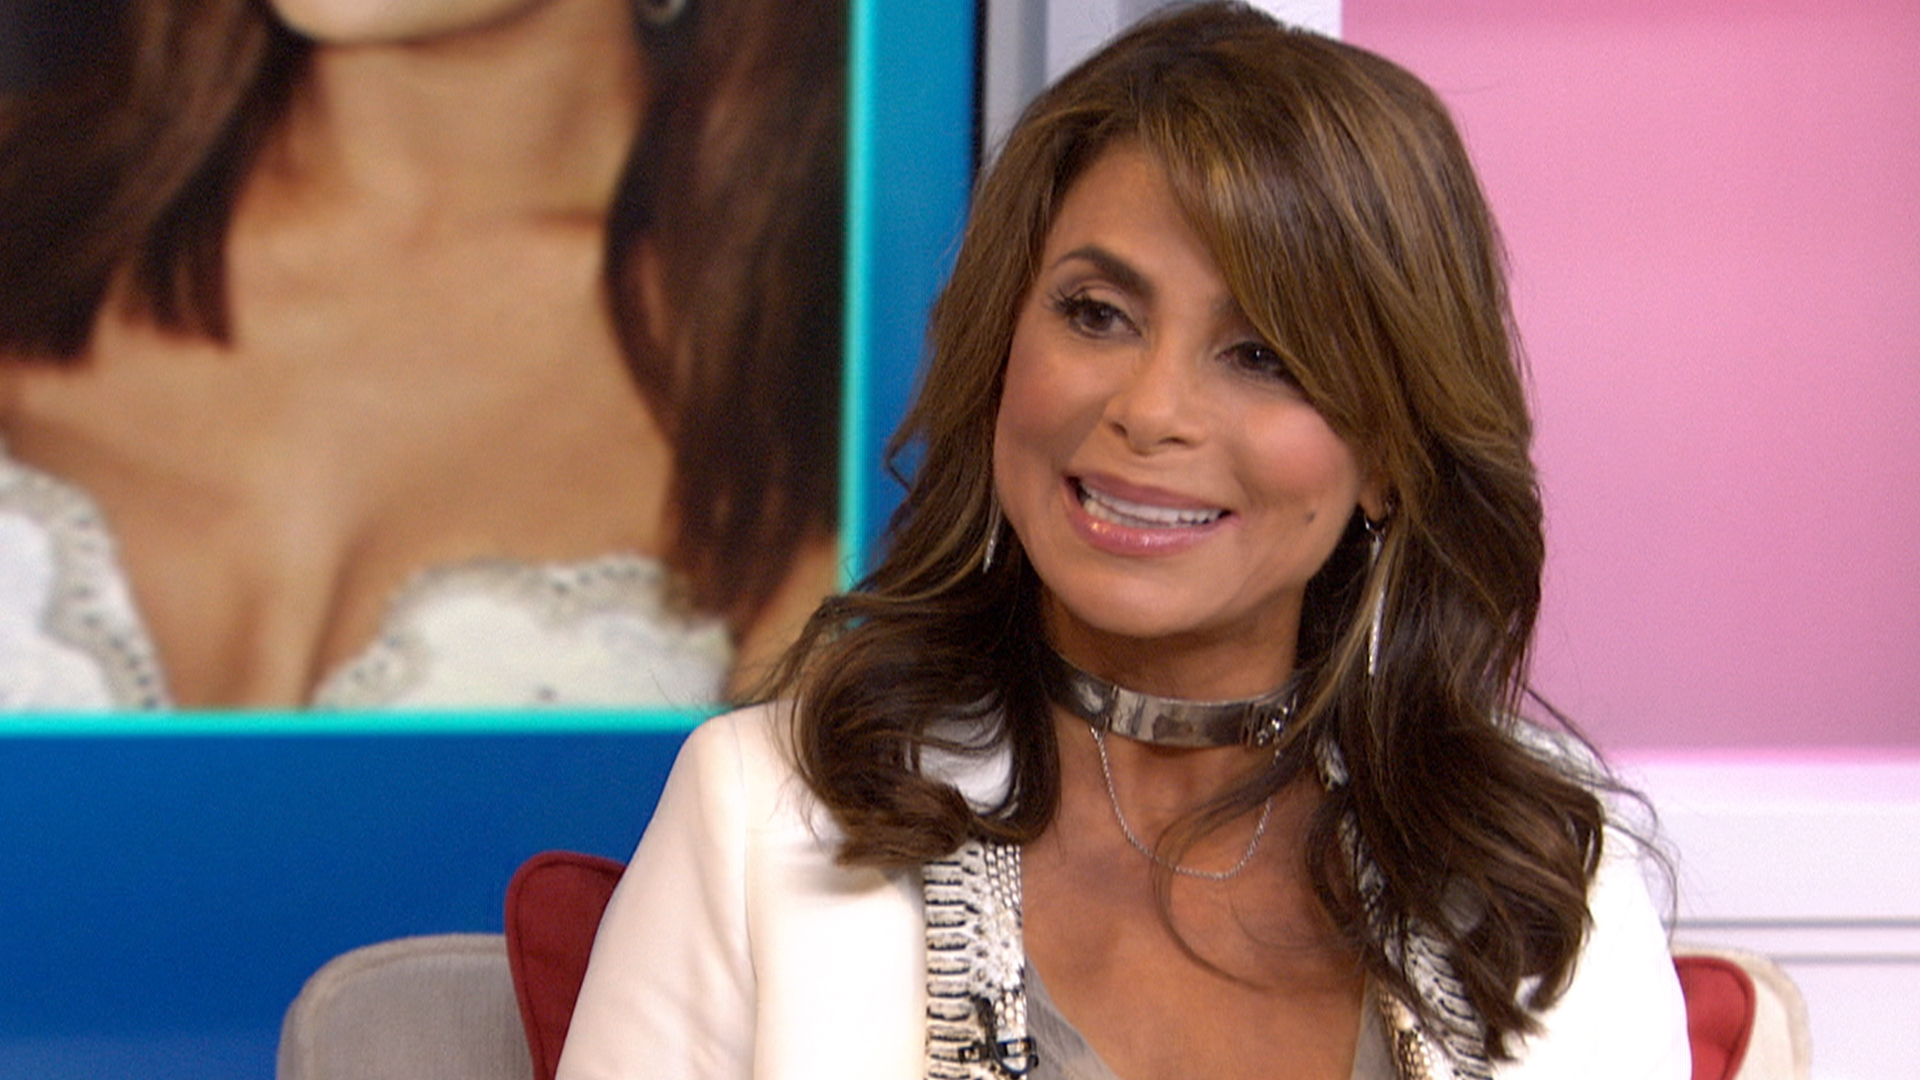 Best Wallpaper Hd For Iphone 6 Paula Abdul Wallpapers High Quality Download Free